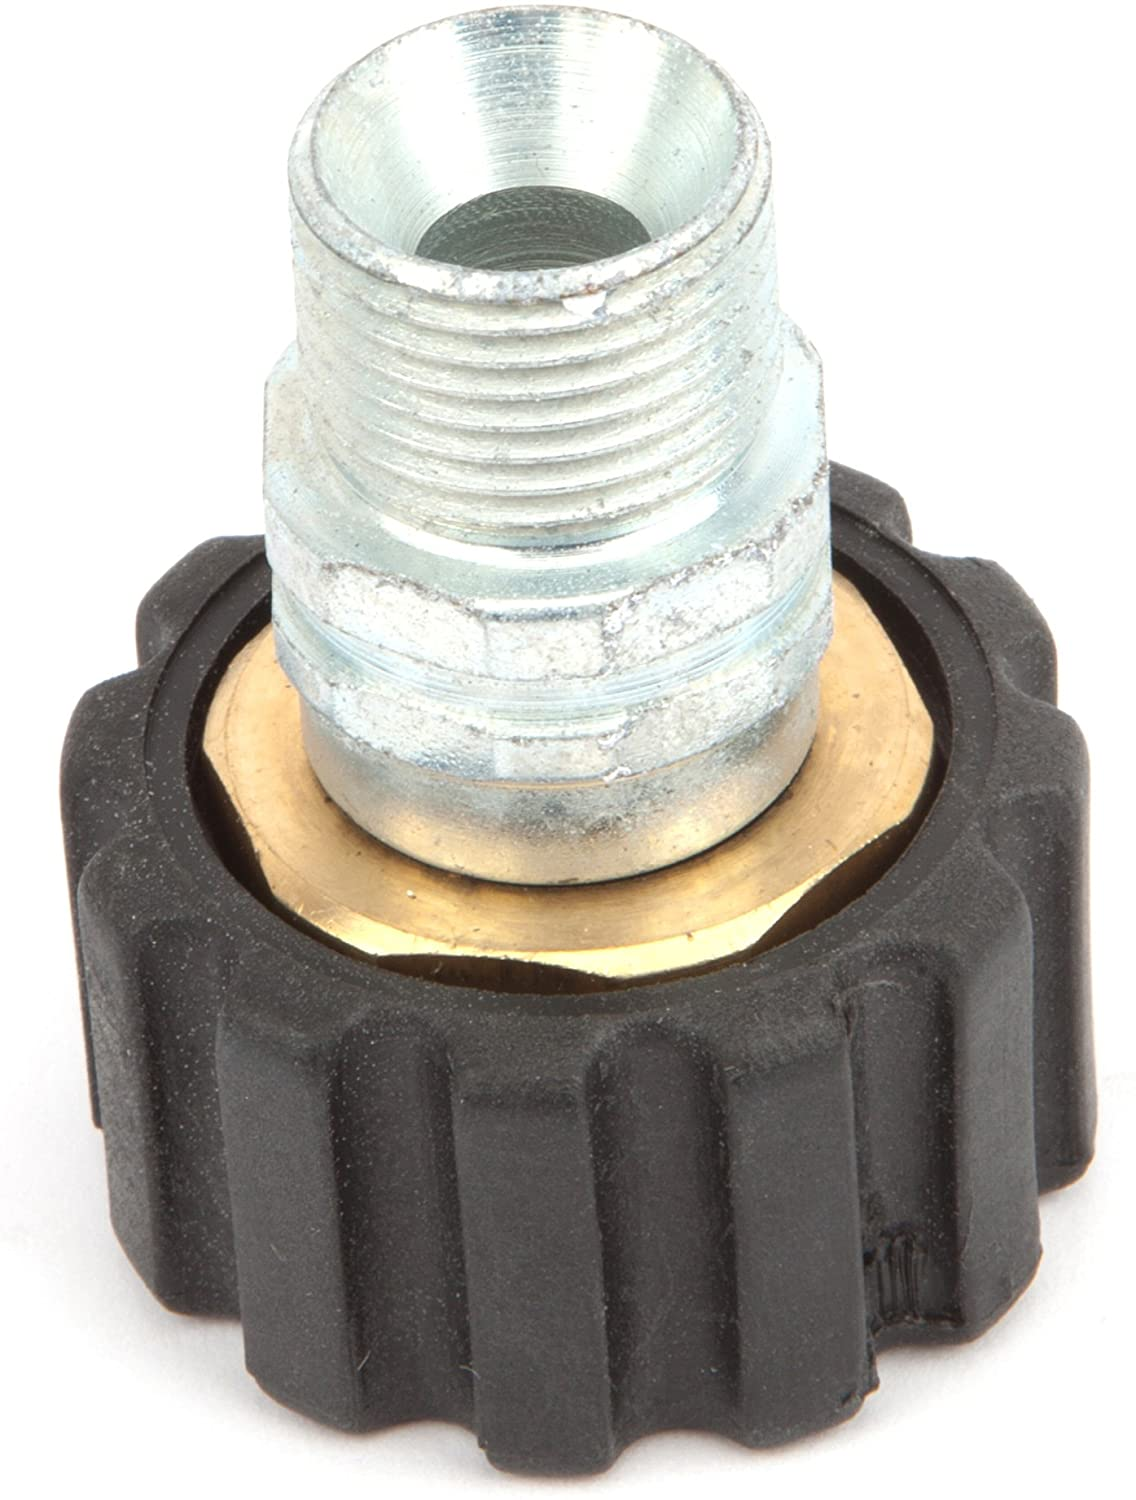 Forney 75109 Pressure Washer Accessories, Male Screw Coupling, M22F to 3/8-Inch Male NPT